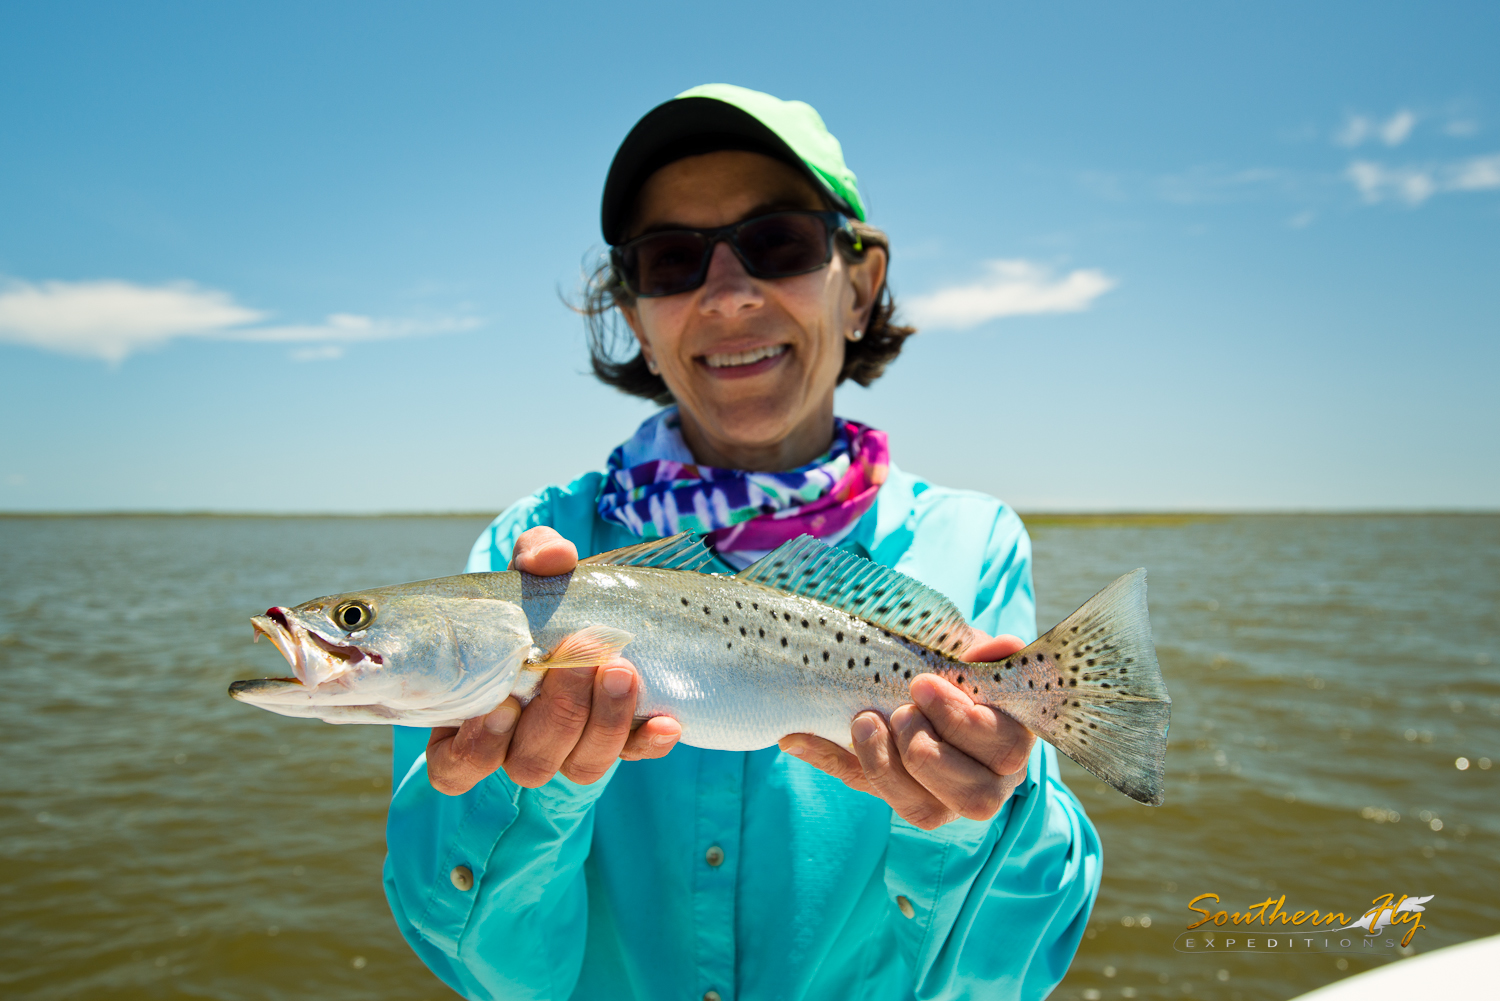 Lady Anglers Fly Fishing New Orleans - Southern Fly Expeditions